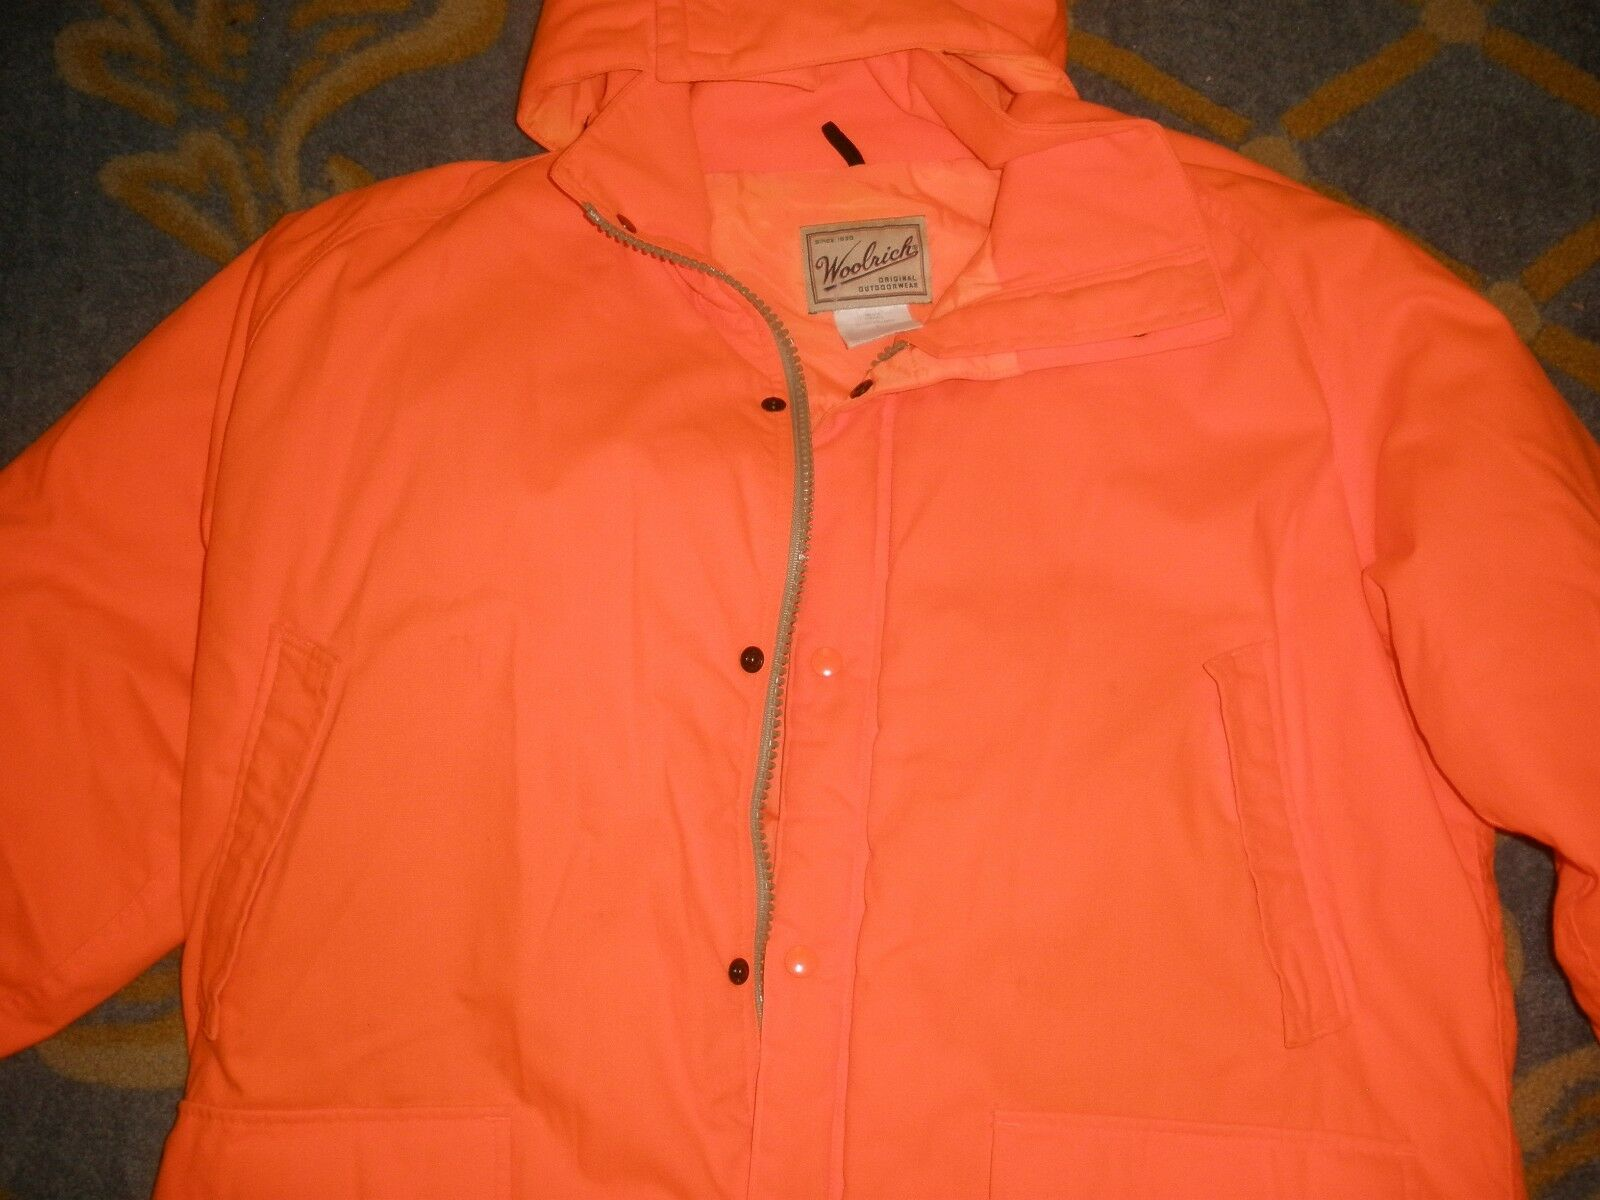 HUNTING Woolrich Original Outdoorwear Hood Coat Thermolite Thermolite Thermolite Plus Large Orange dec561